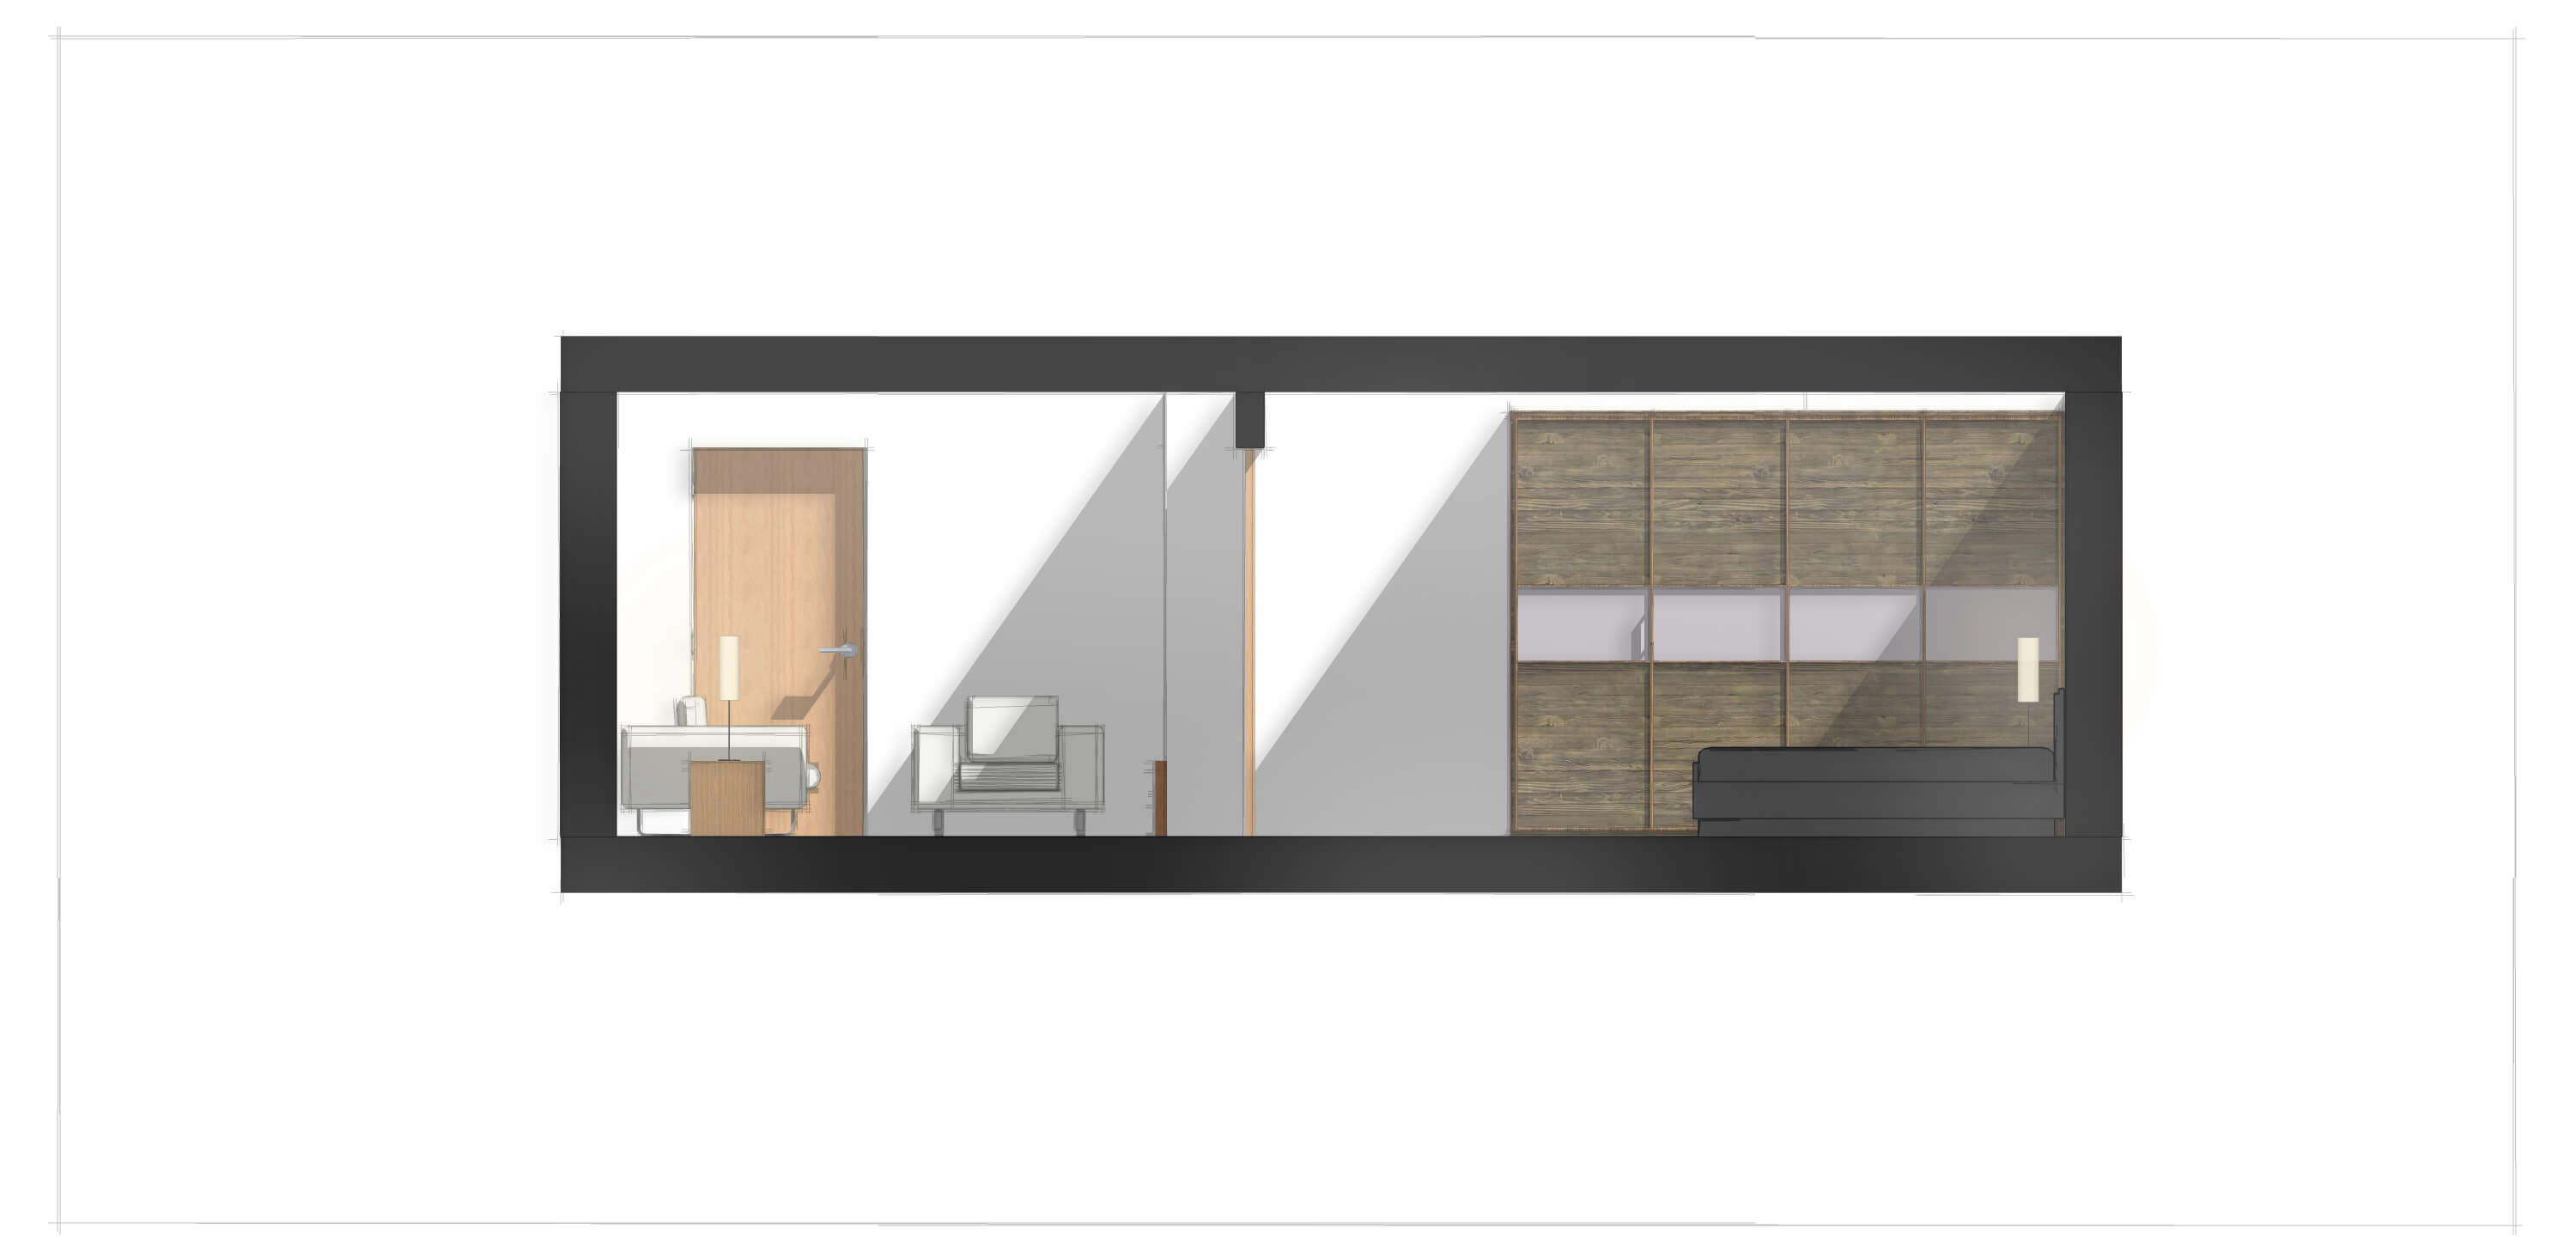 Restaurant Feasibility View 6